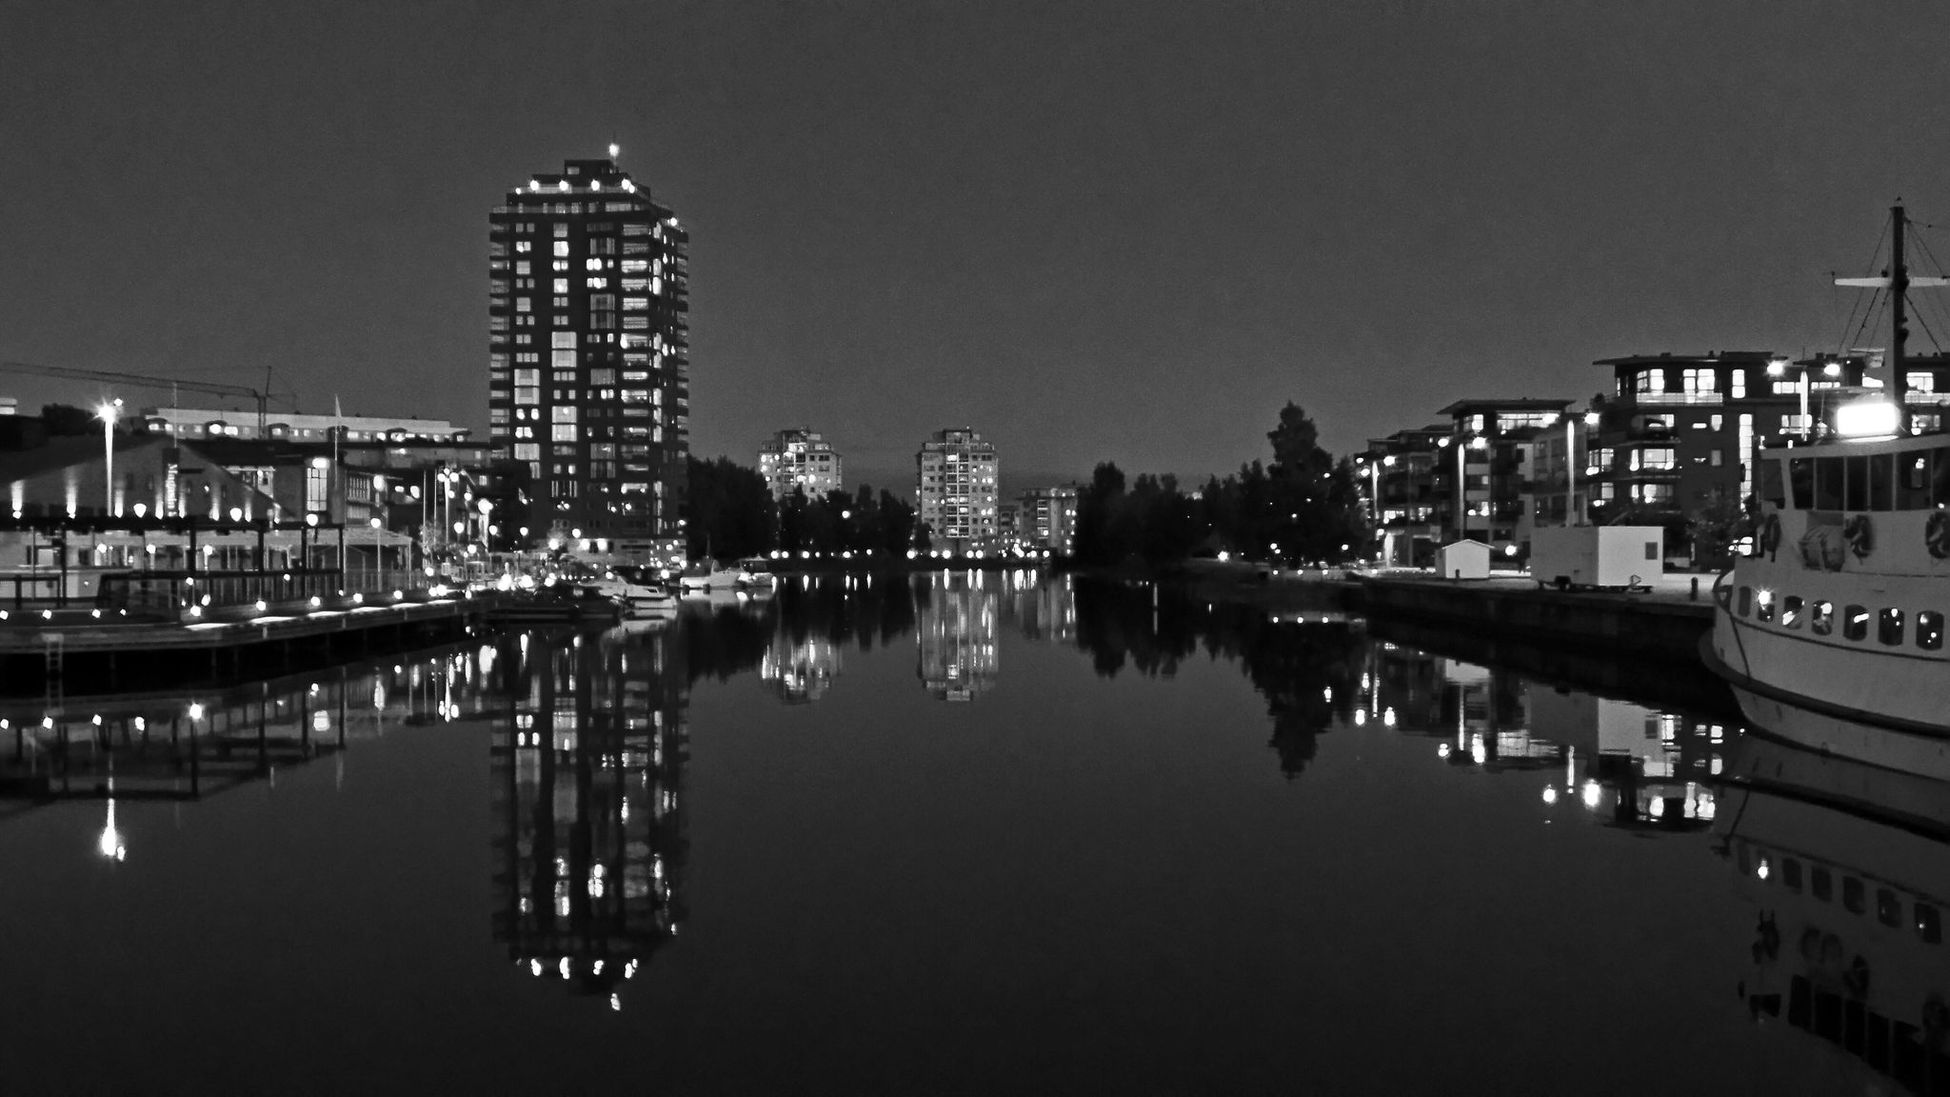 Water Reflections, water, night, light, Blac&white